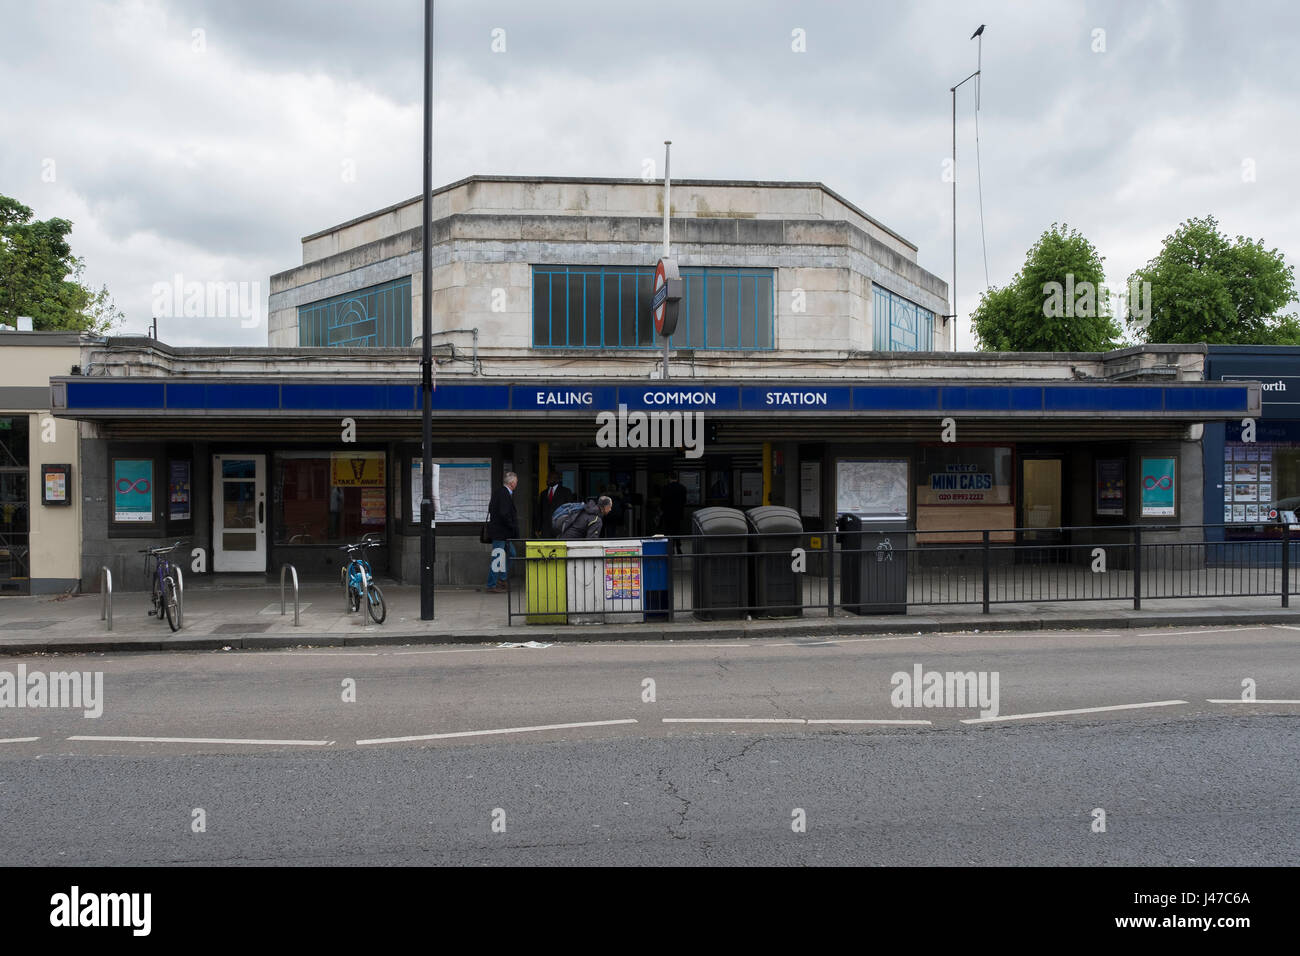 Ealing Common station - Stock Image